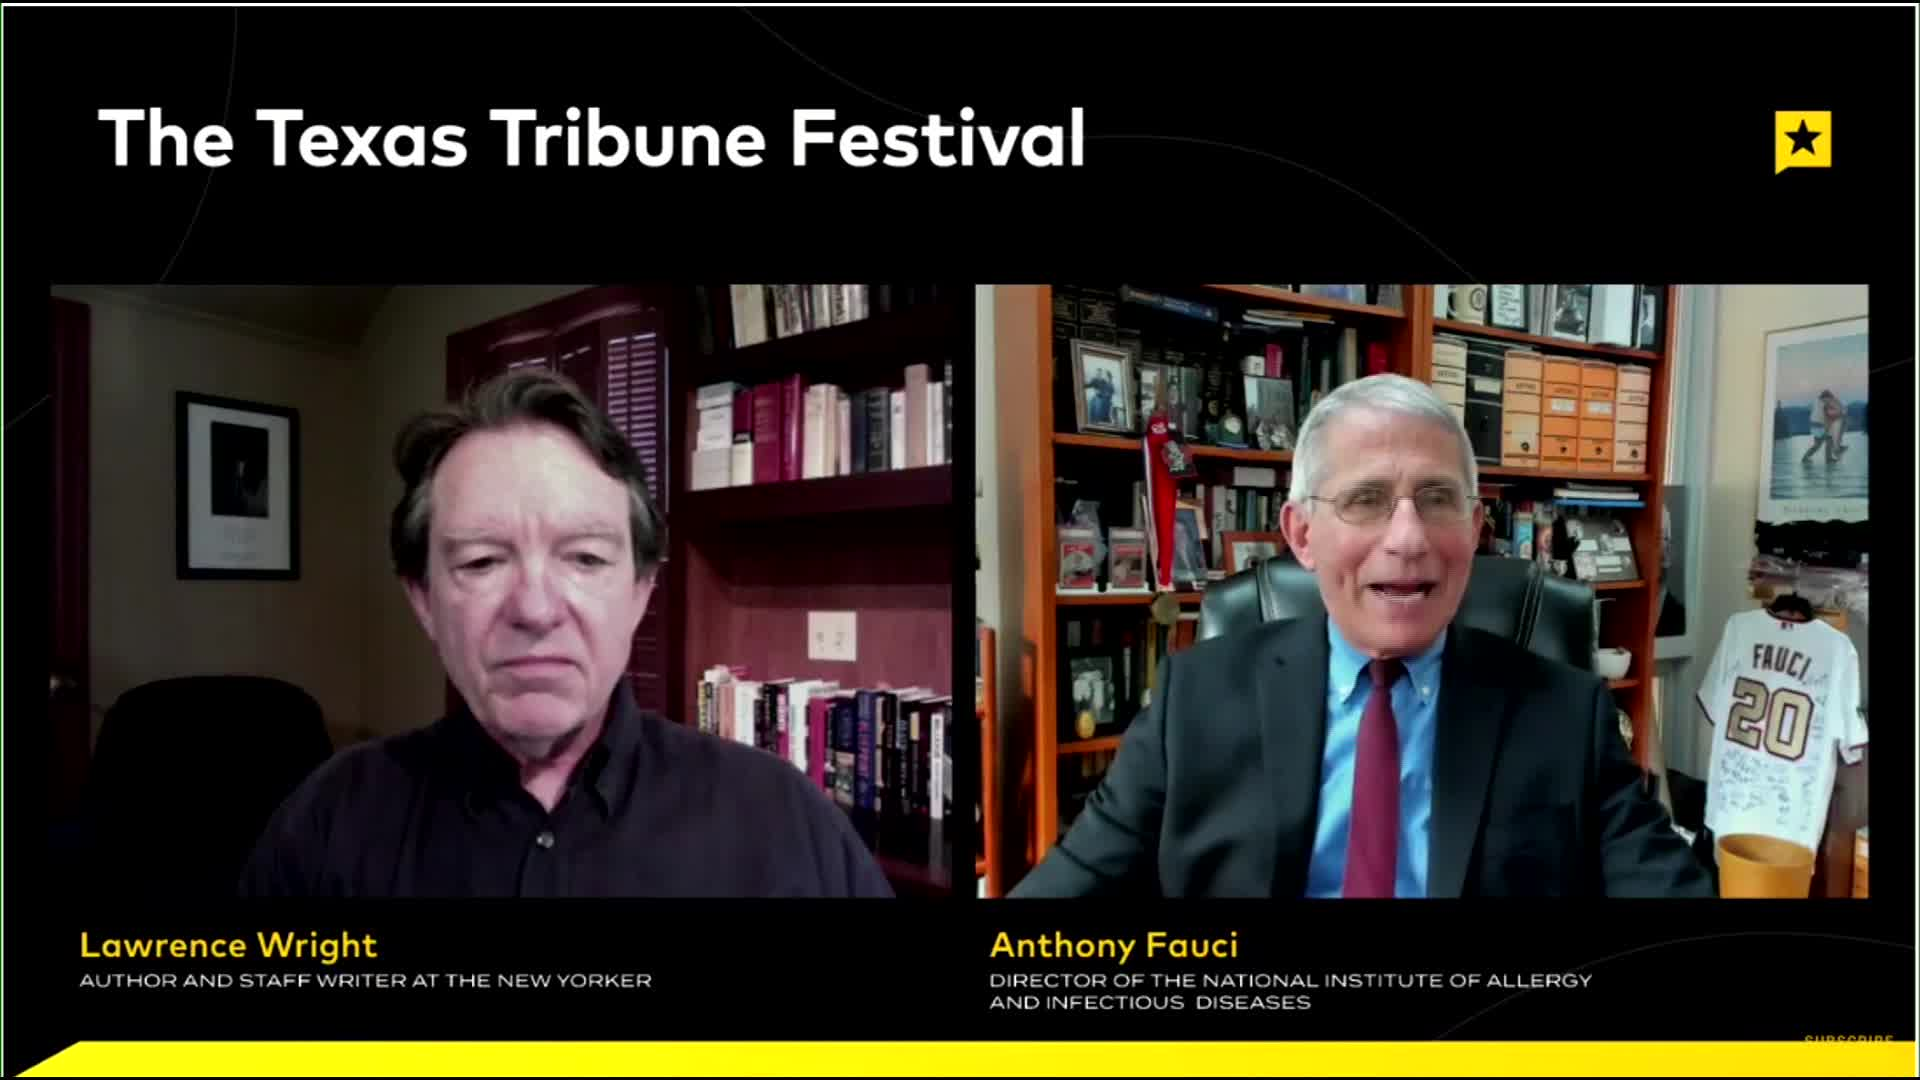 Lawrence Wright, staff writer at the New Yorker, speaks to Dr. Anthony Fauci during the Texas Tribune Festival.